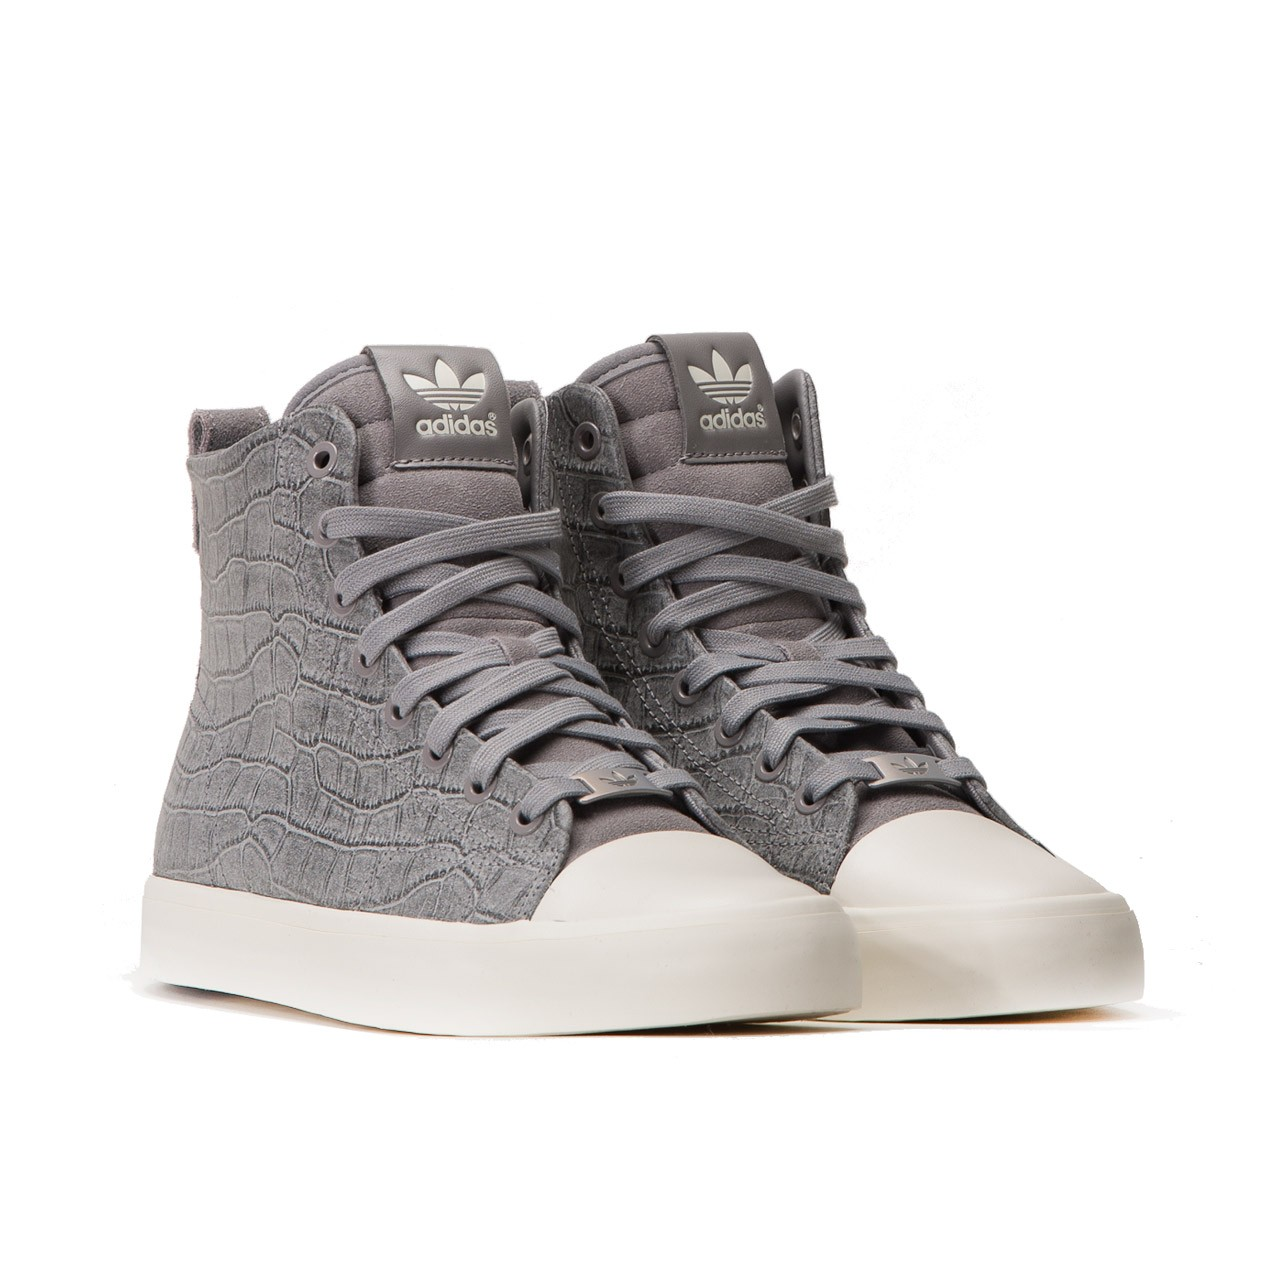 adidas honey 2.0 w (light onix / chalk white) RLWODTO